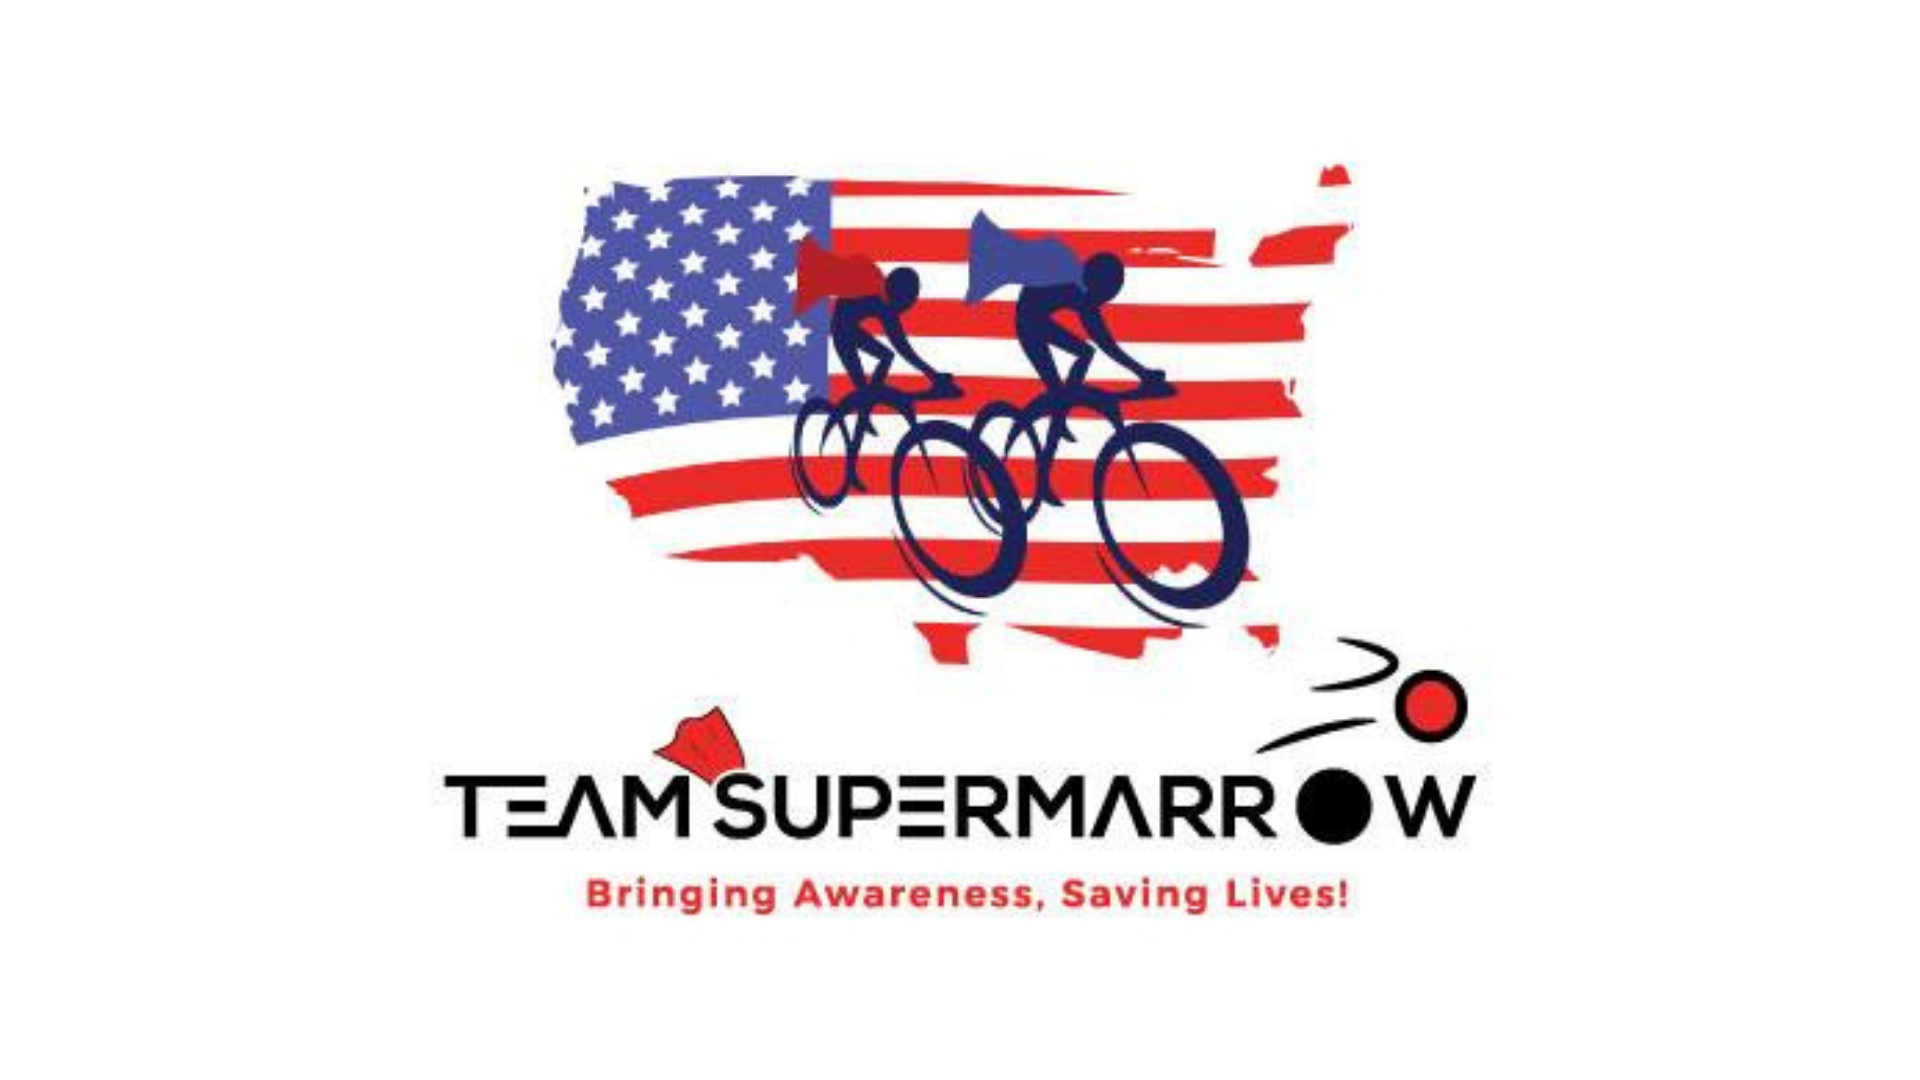 Team SuperMarrow's Race Across America Official Cheerleaders Helping the Team Charge to the Finish Line of the World's Toughest Bicycle Race with Another Cheer